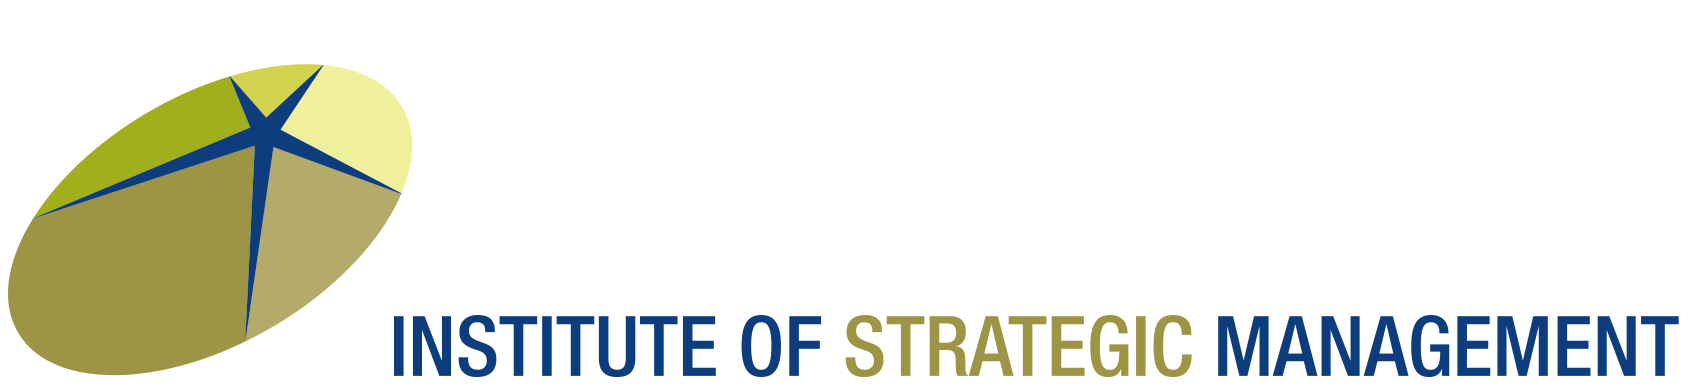 Institute of Strategic Management | Financial, leadership & strategy  training and support